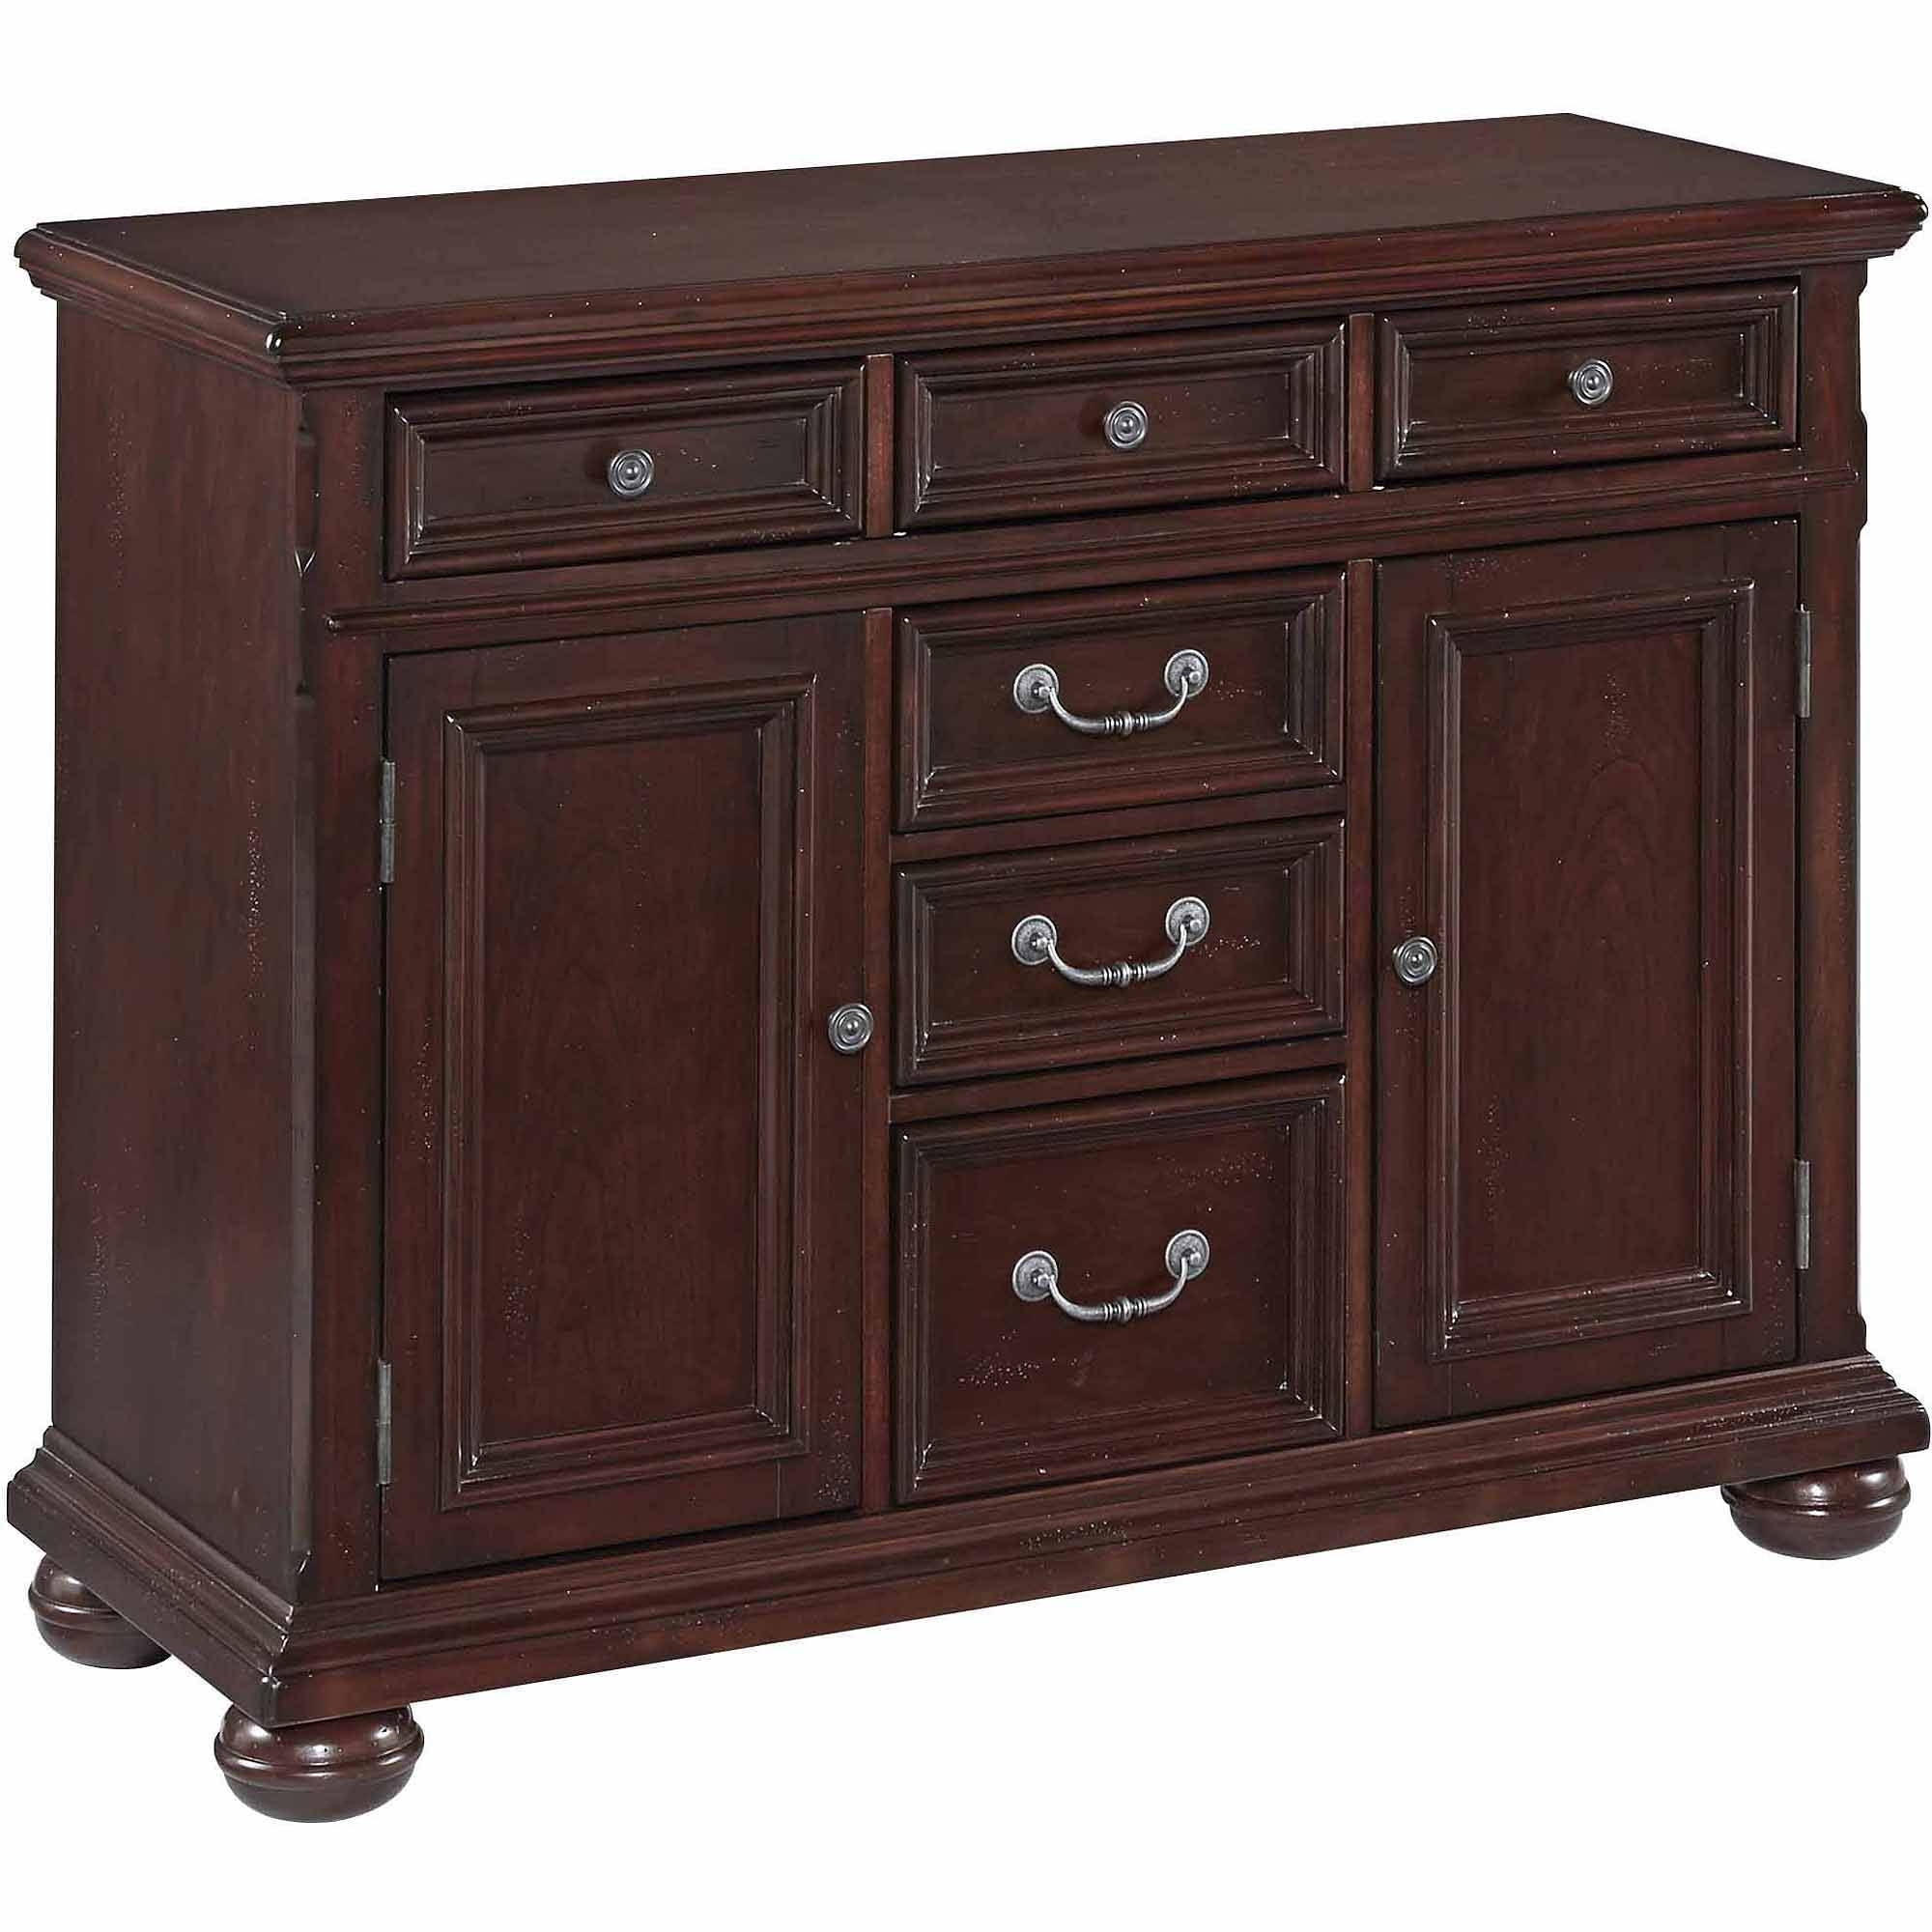 China Cabinet & Buffet Furniture : Kitchen & Dining Furniture pertaining to Multi Drawer Sideboards (Image 11 of 30)